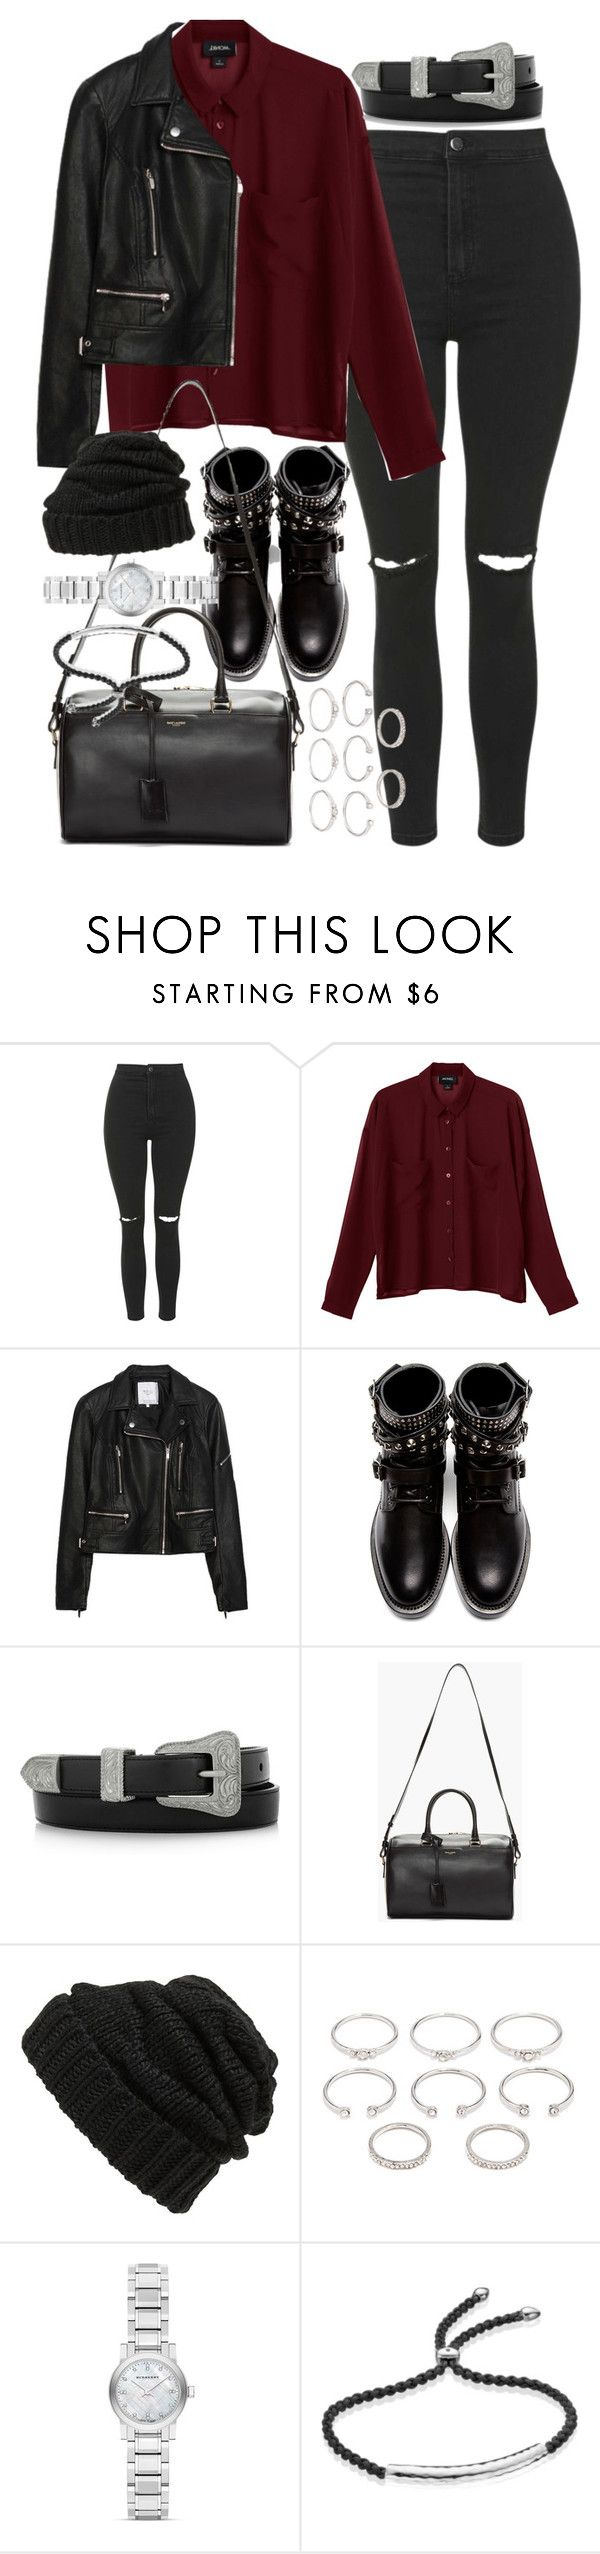 """Outfit with a leather jacket for winter"" by ferned ❤ liked on Polyvore featuring Topshop, Monki, Zara, Yves Saint Laurent, Leith, Forever 21, Burberry and Monica Vinader"